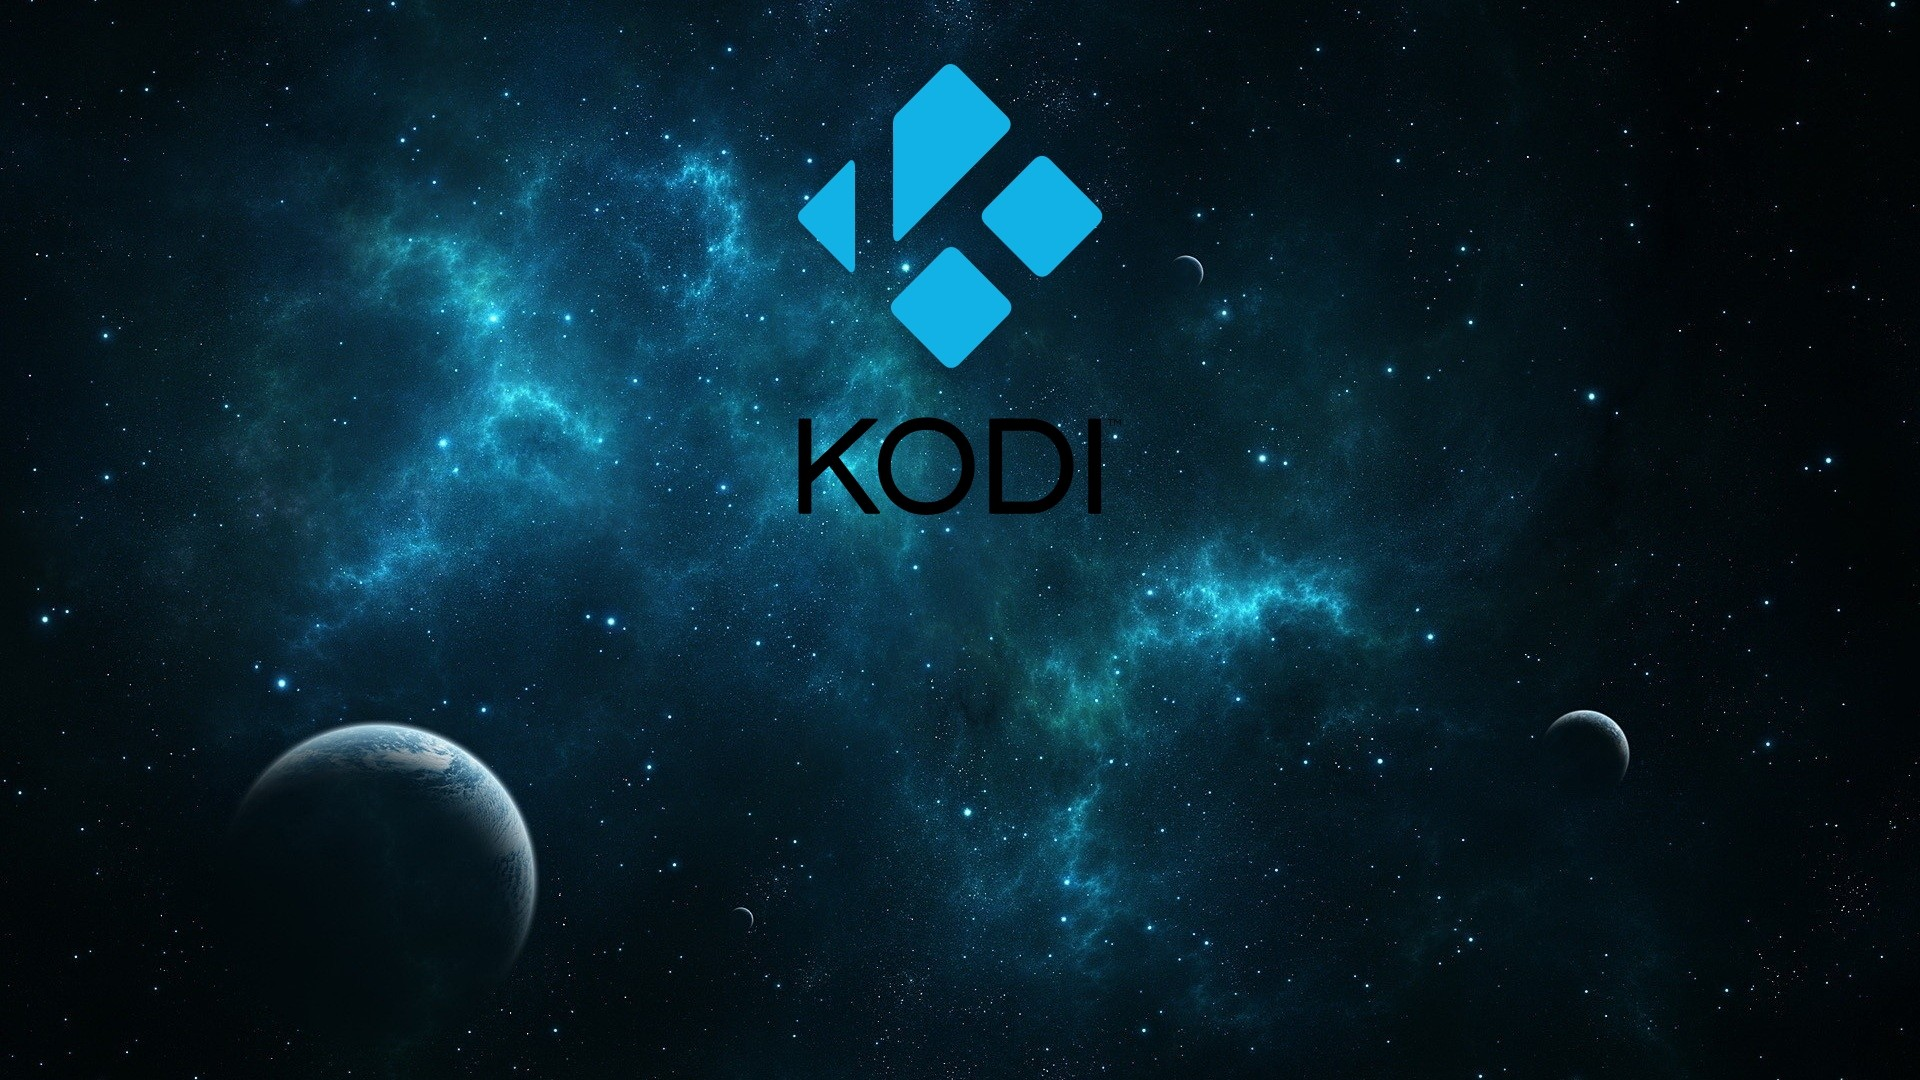 Kodi Background 1080p Wallpapers 84 images 1920x1080